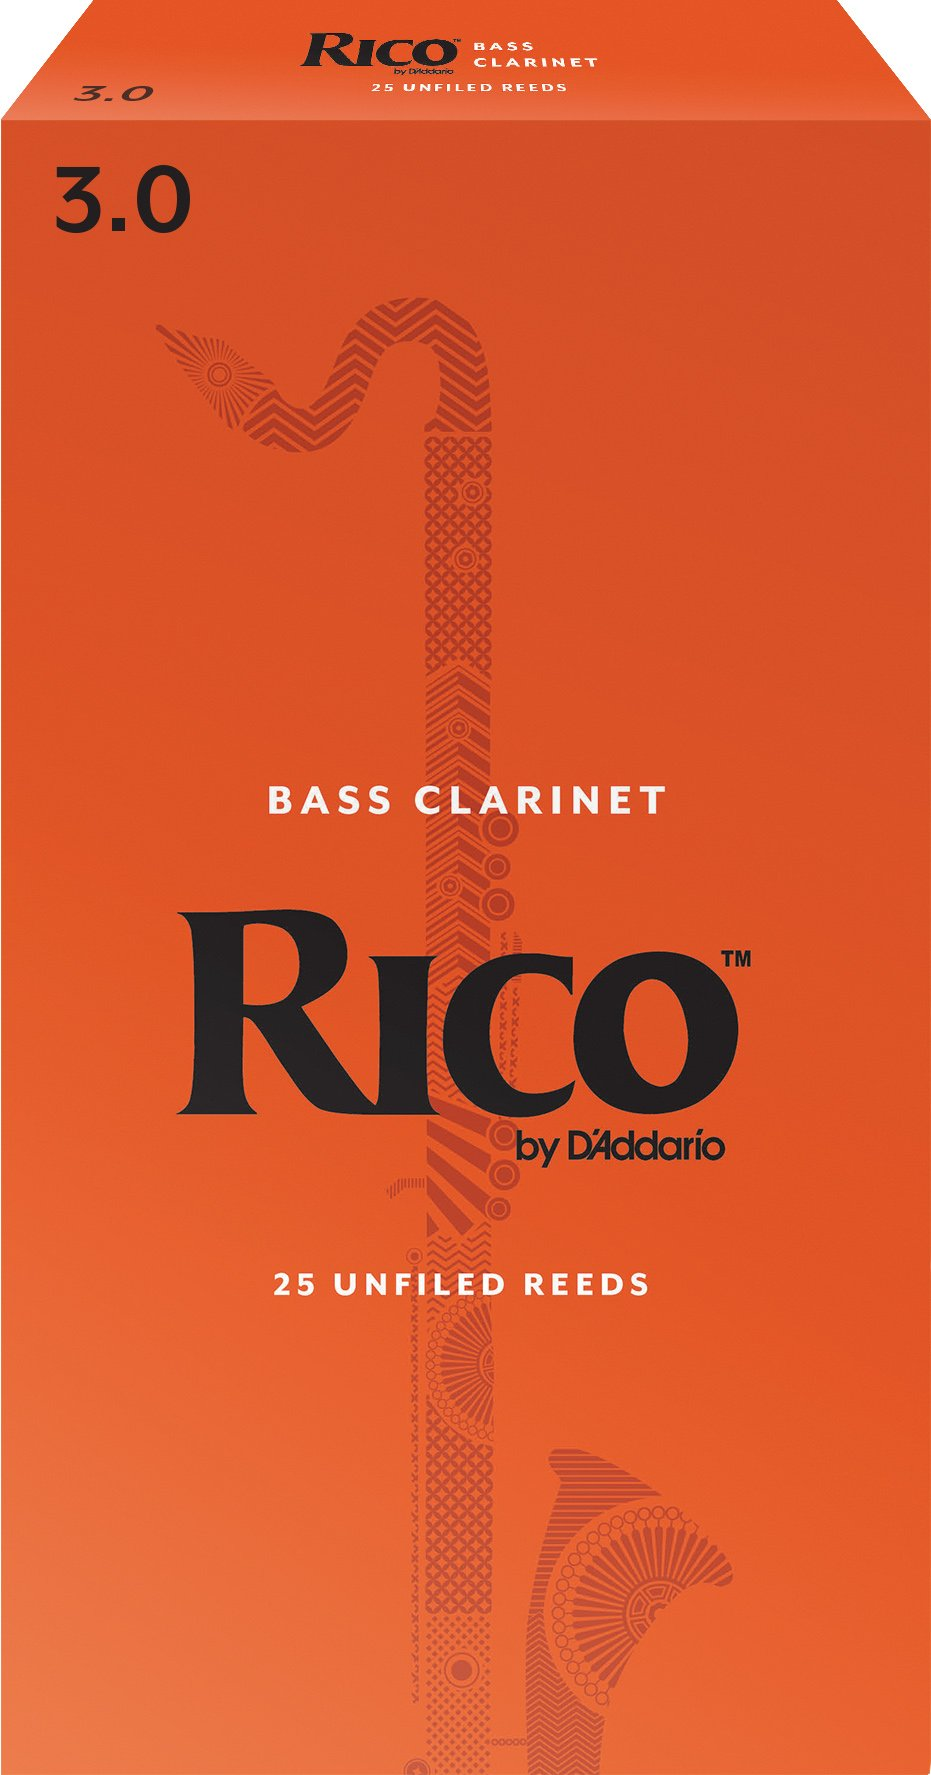 Rico by D'Addario Bass Clarinet Reeds, Strength 3.0, 25-pack